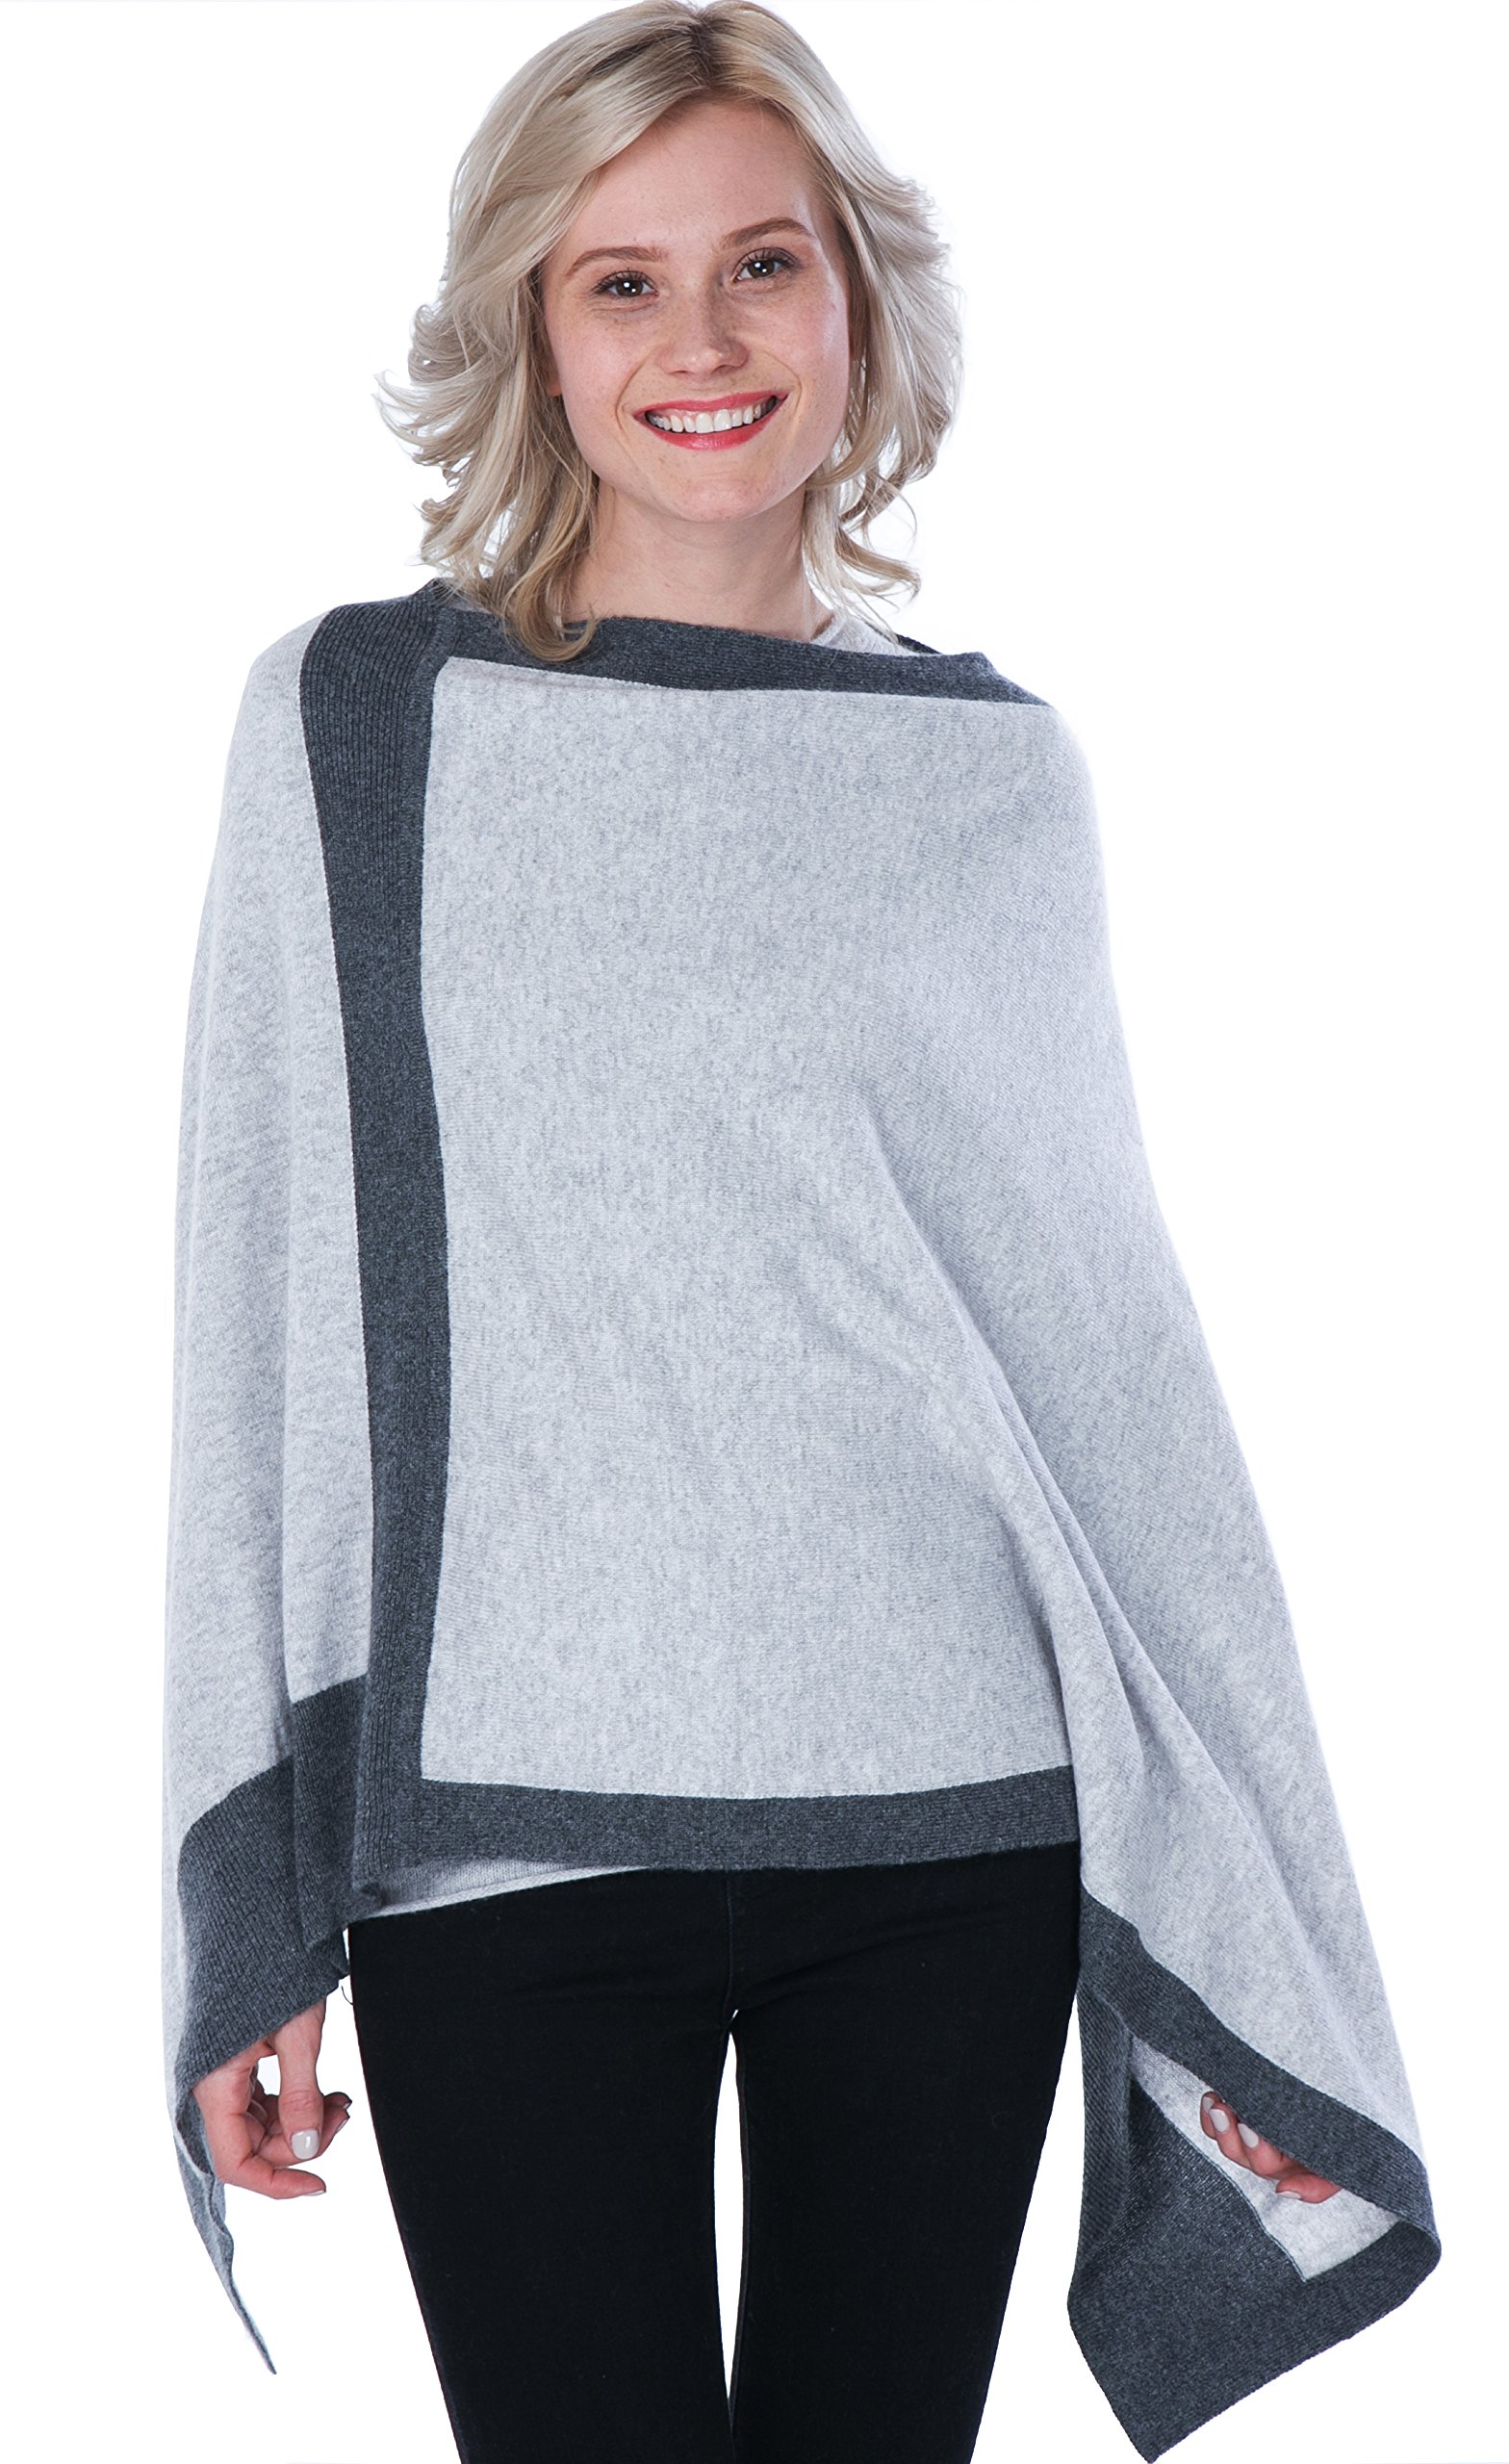 100% Cashmere Poncho Asymmetrical Boat Neck Wraps for Women by cashmere 4 U,Argent With Gris Moyen Border (Light Gray-dark Gray),One Size